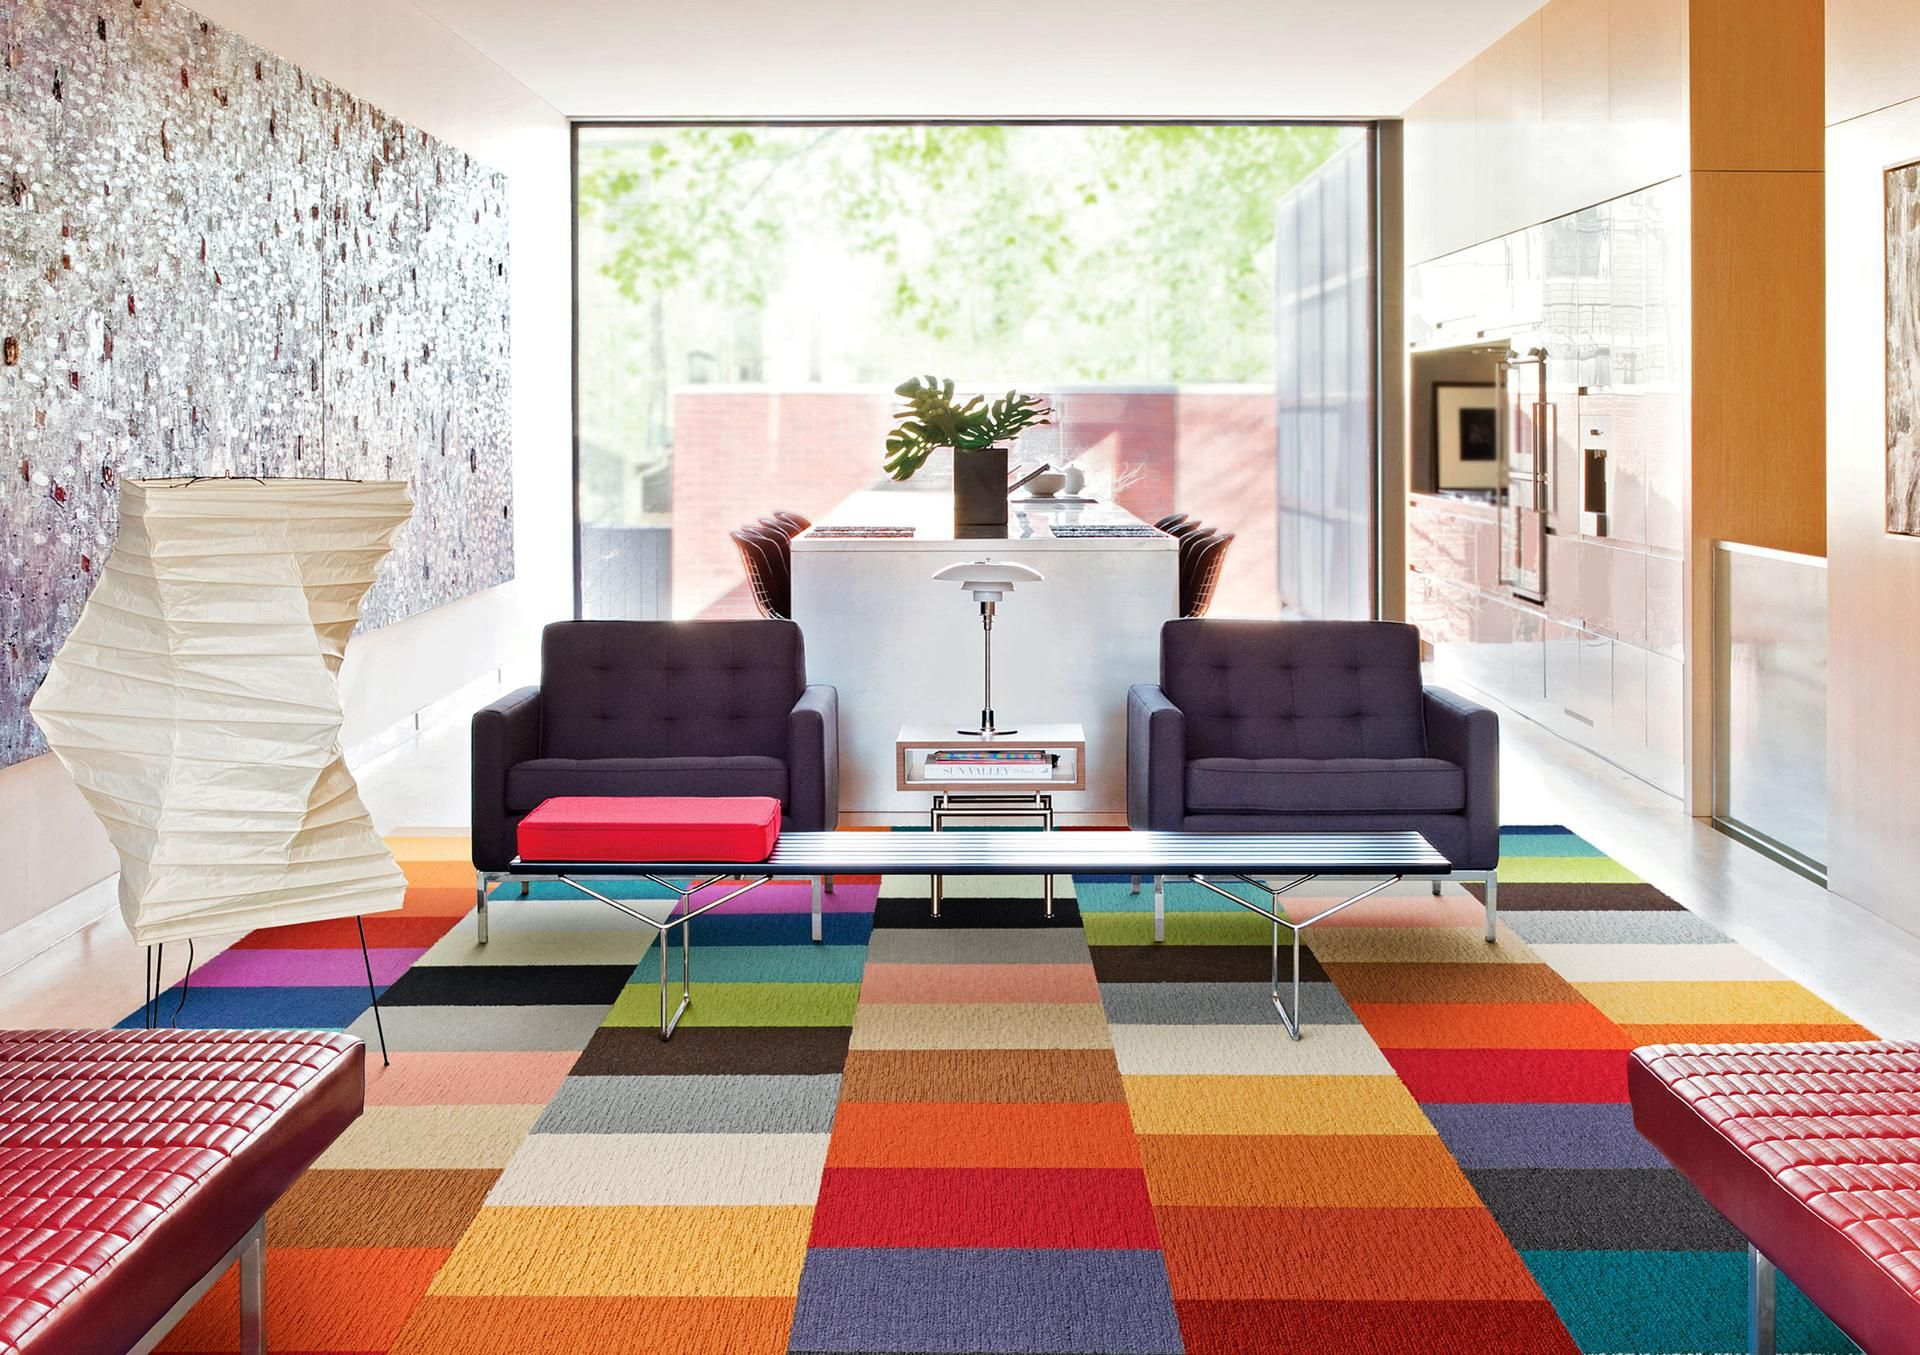 flor carpet tiles design ideas penelusuran google - Carpet Tile Design Ideas